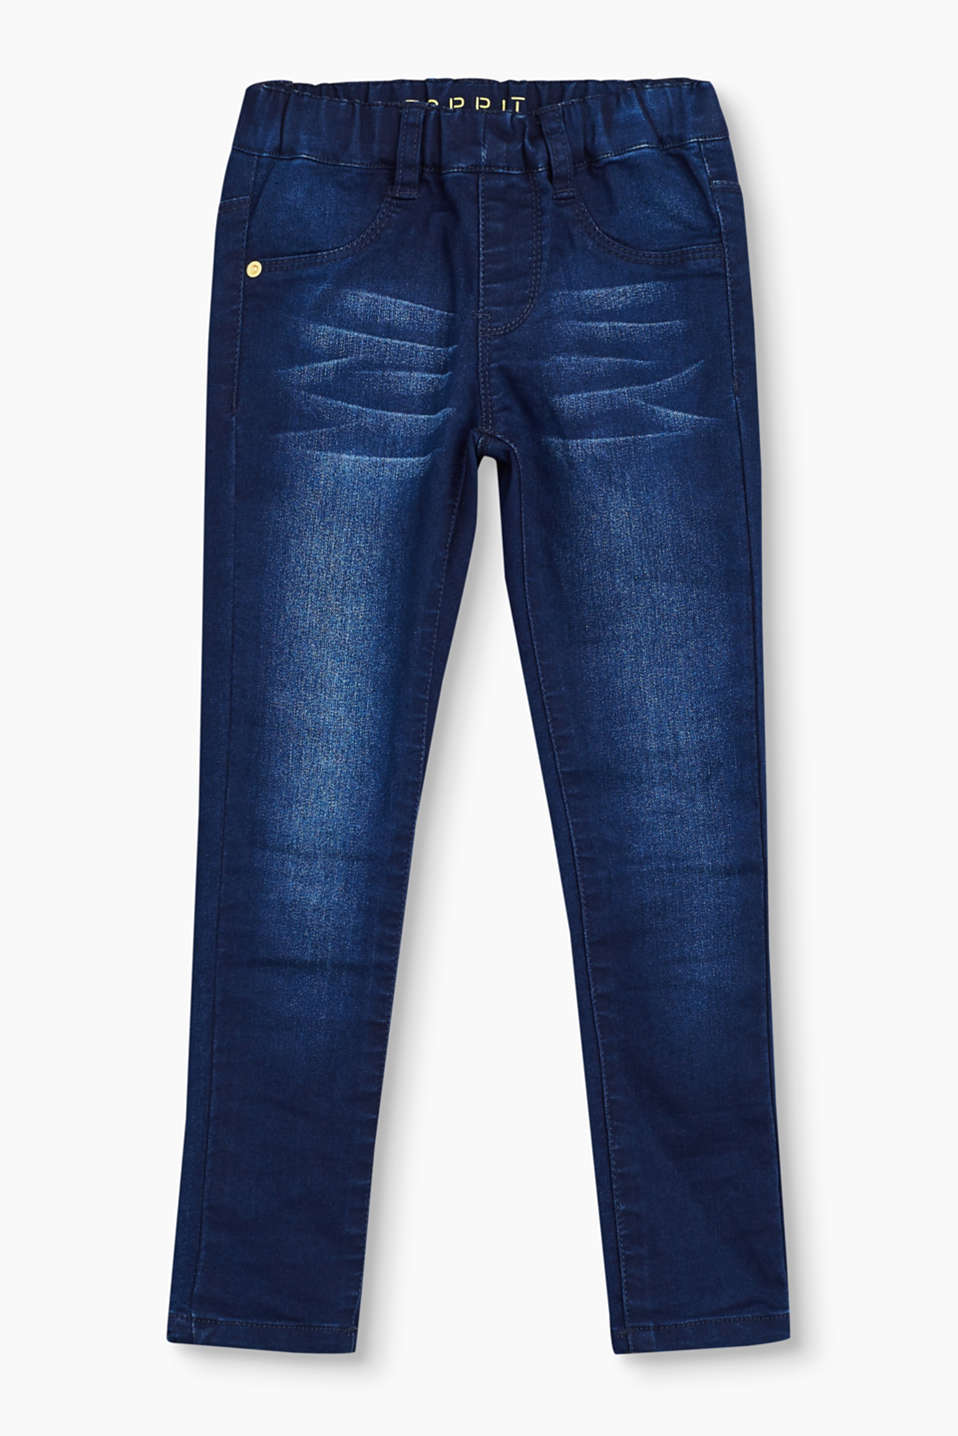 Esprit - Jeggings aus weichem Stretch-Denim